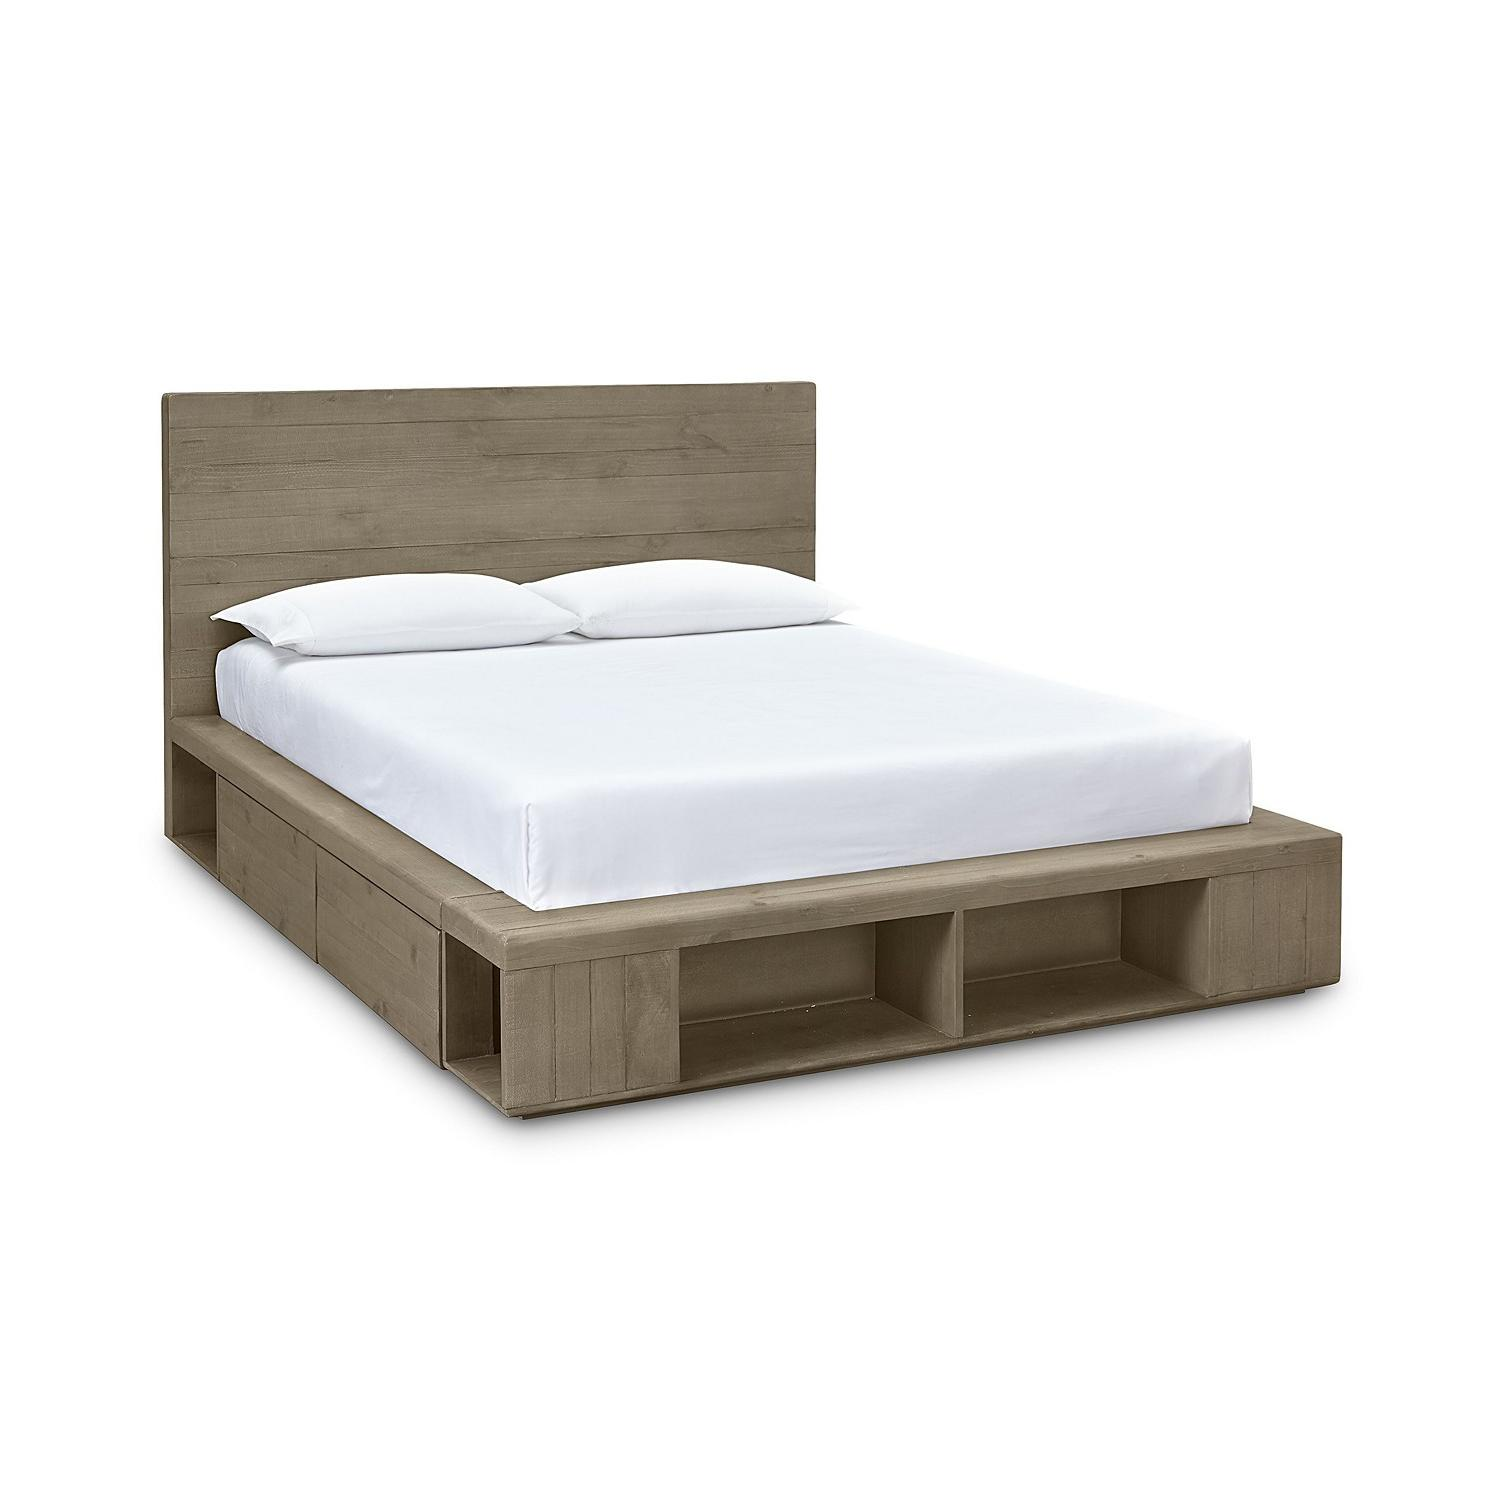 Macy's Brandon Storage King Platform Bed - image-0